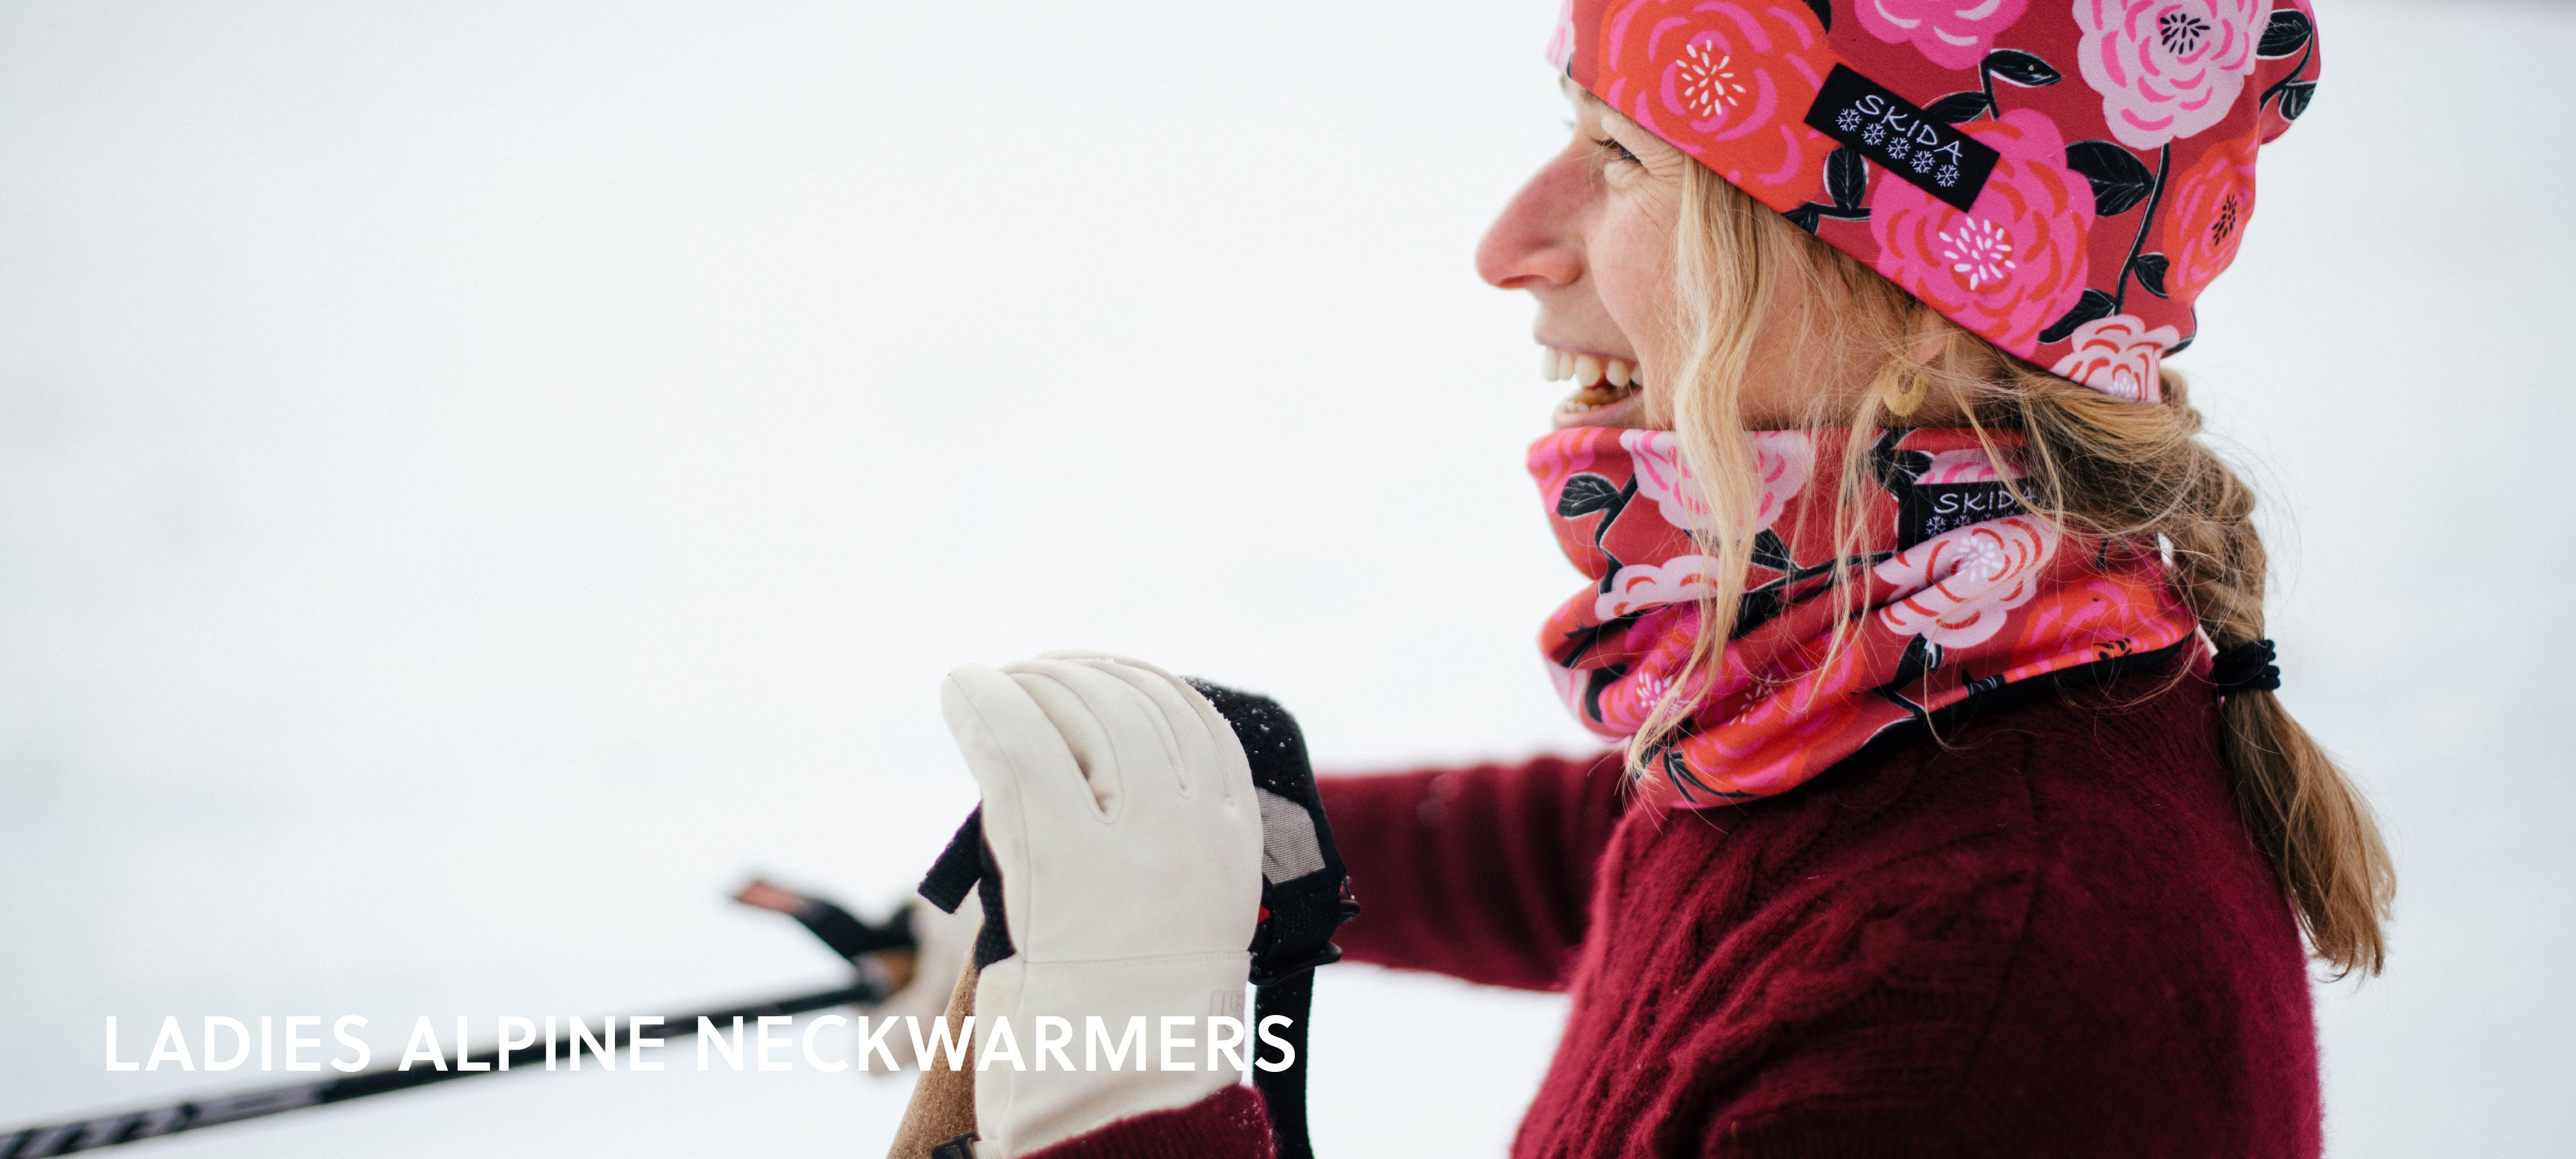 Shop Ladies Alpine Neckwarmers!